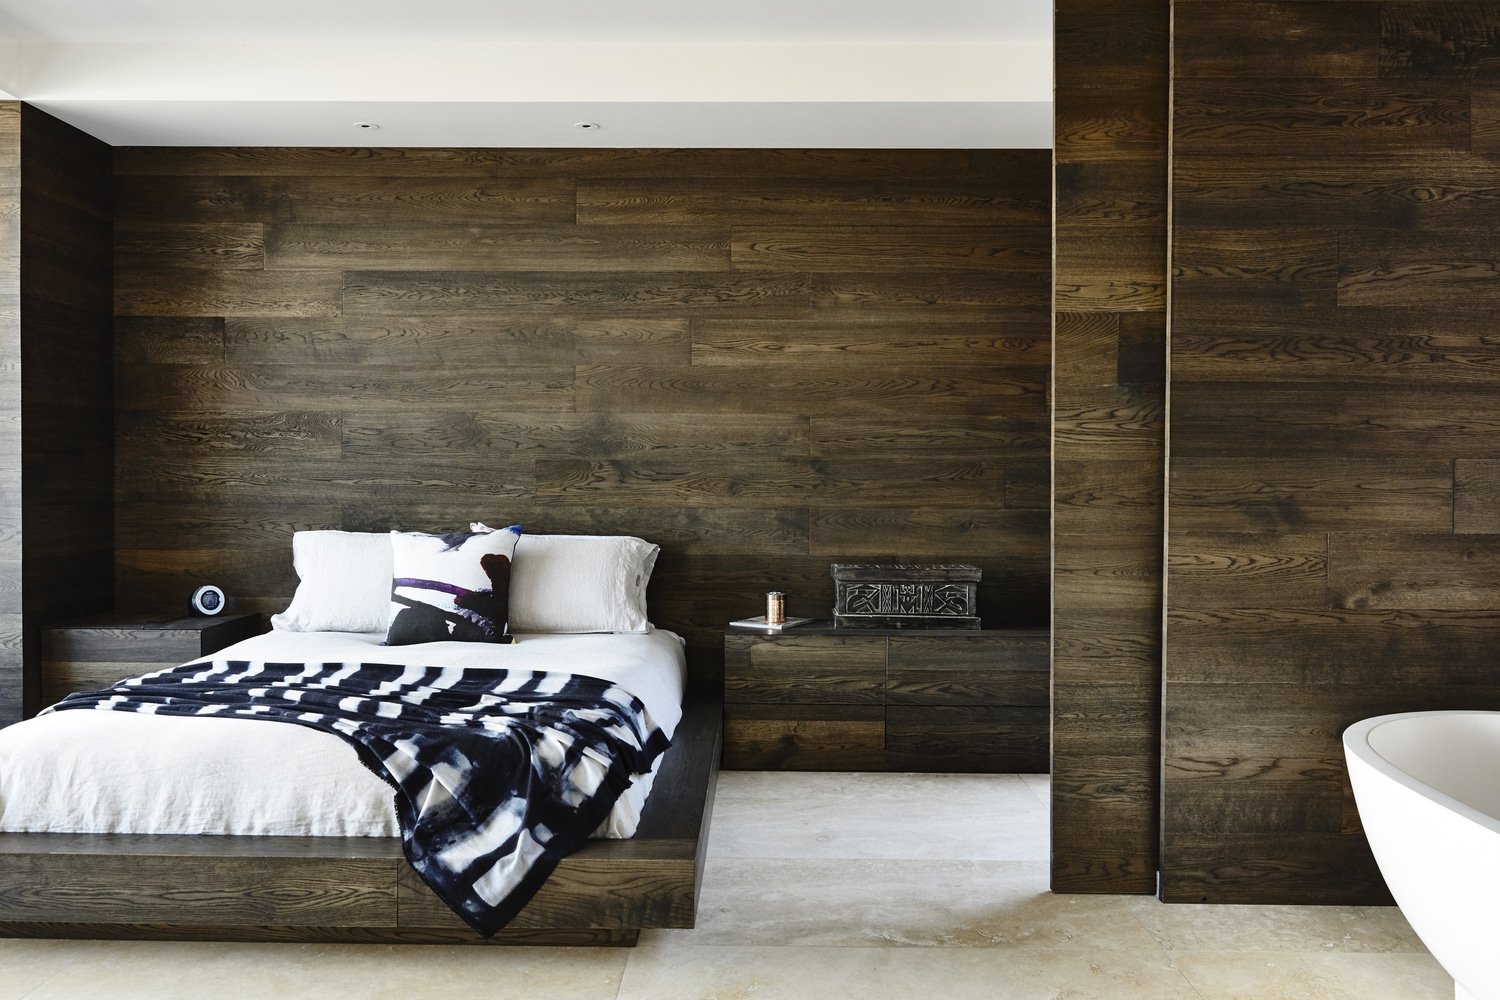 5 materiales para revestimientos interiores construir tv - Pared de madera interior ...